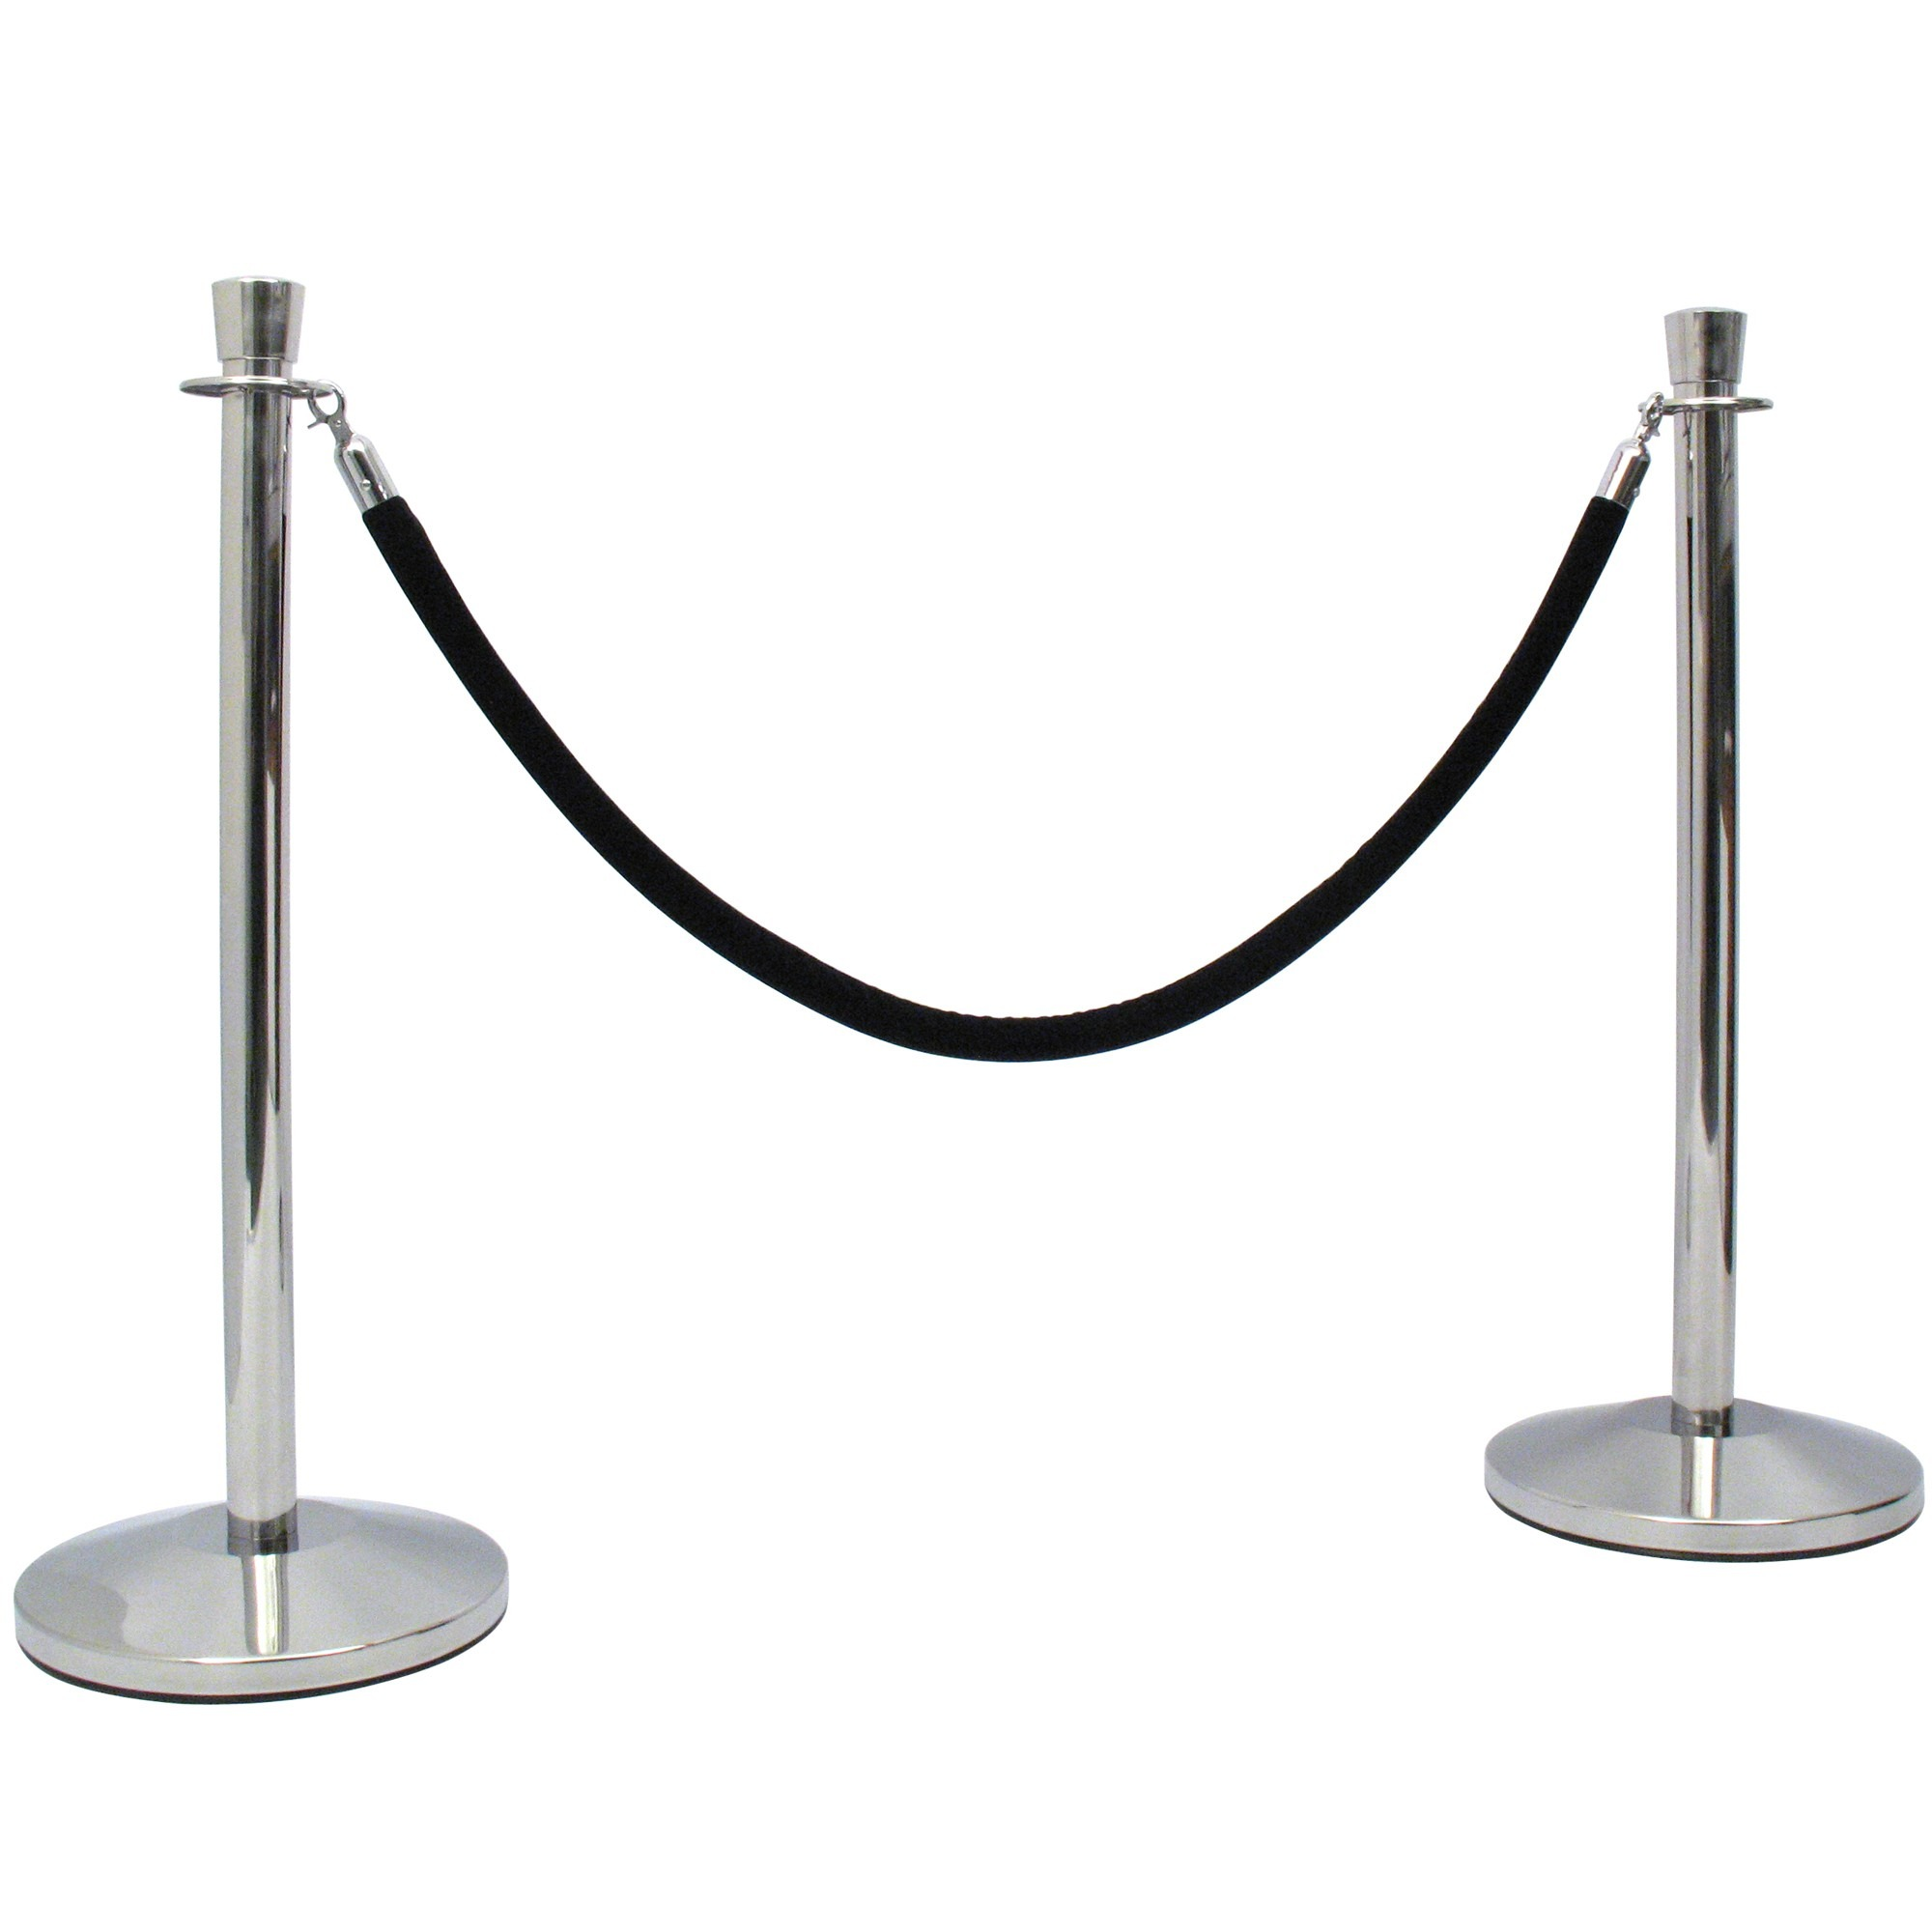 Premium Pole & Rope Barrier System | Rope Barriers